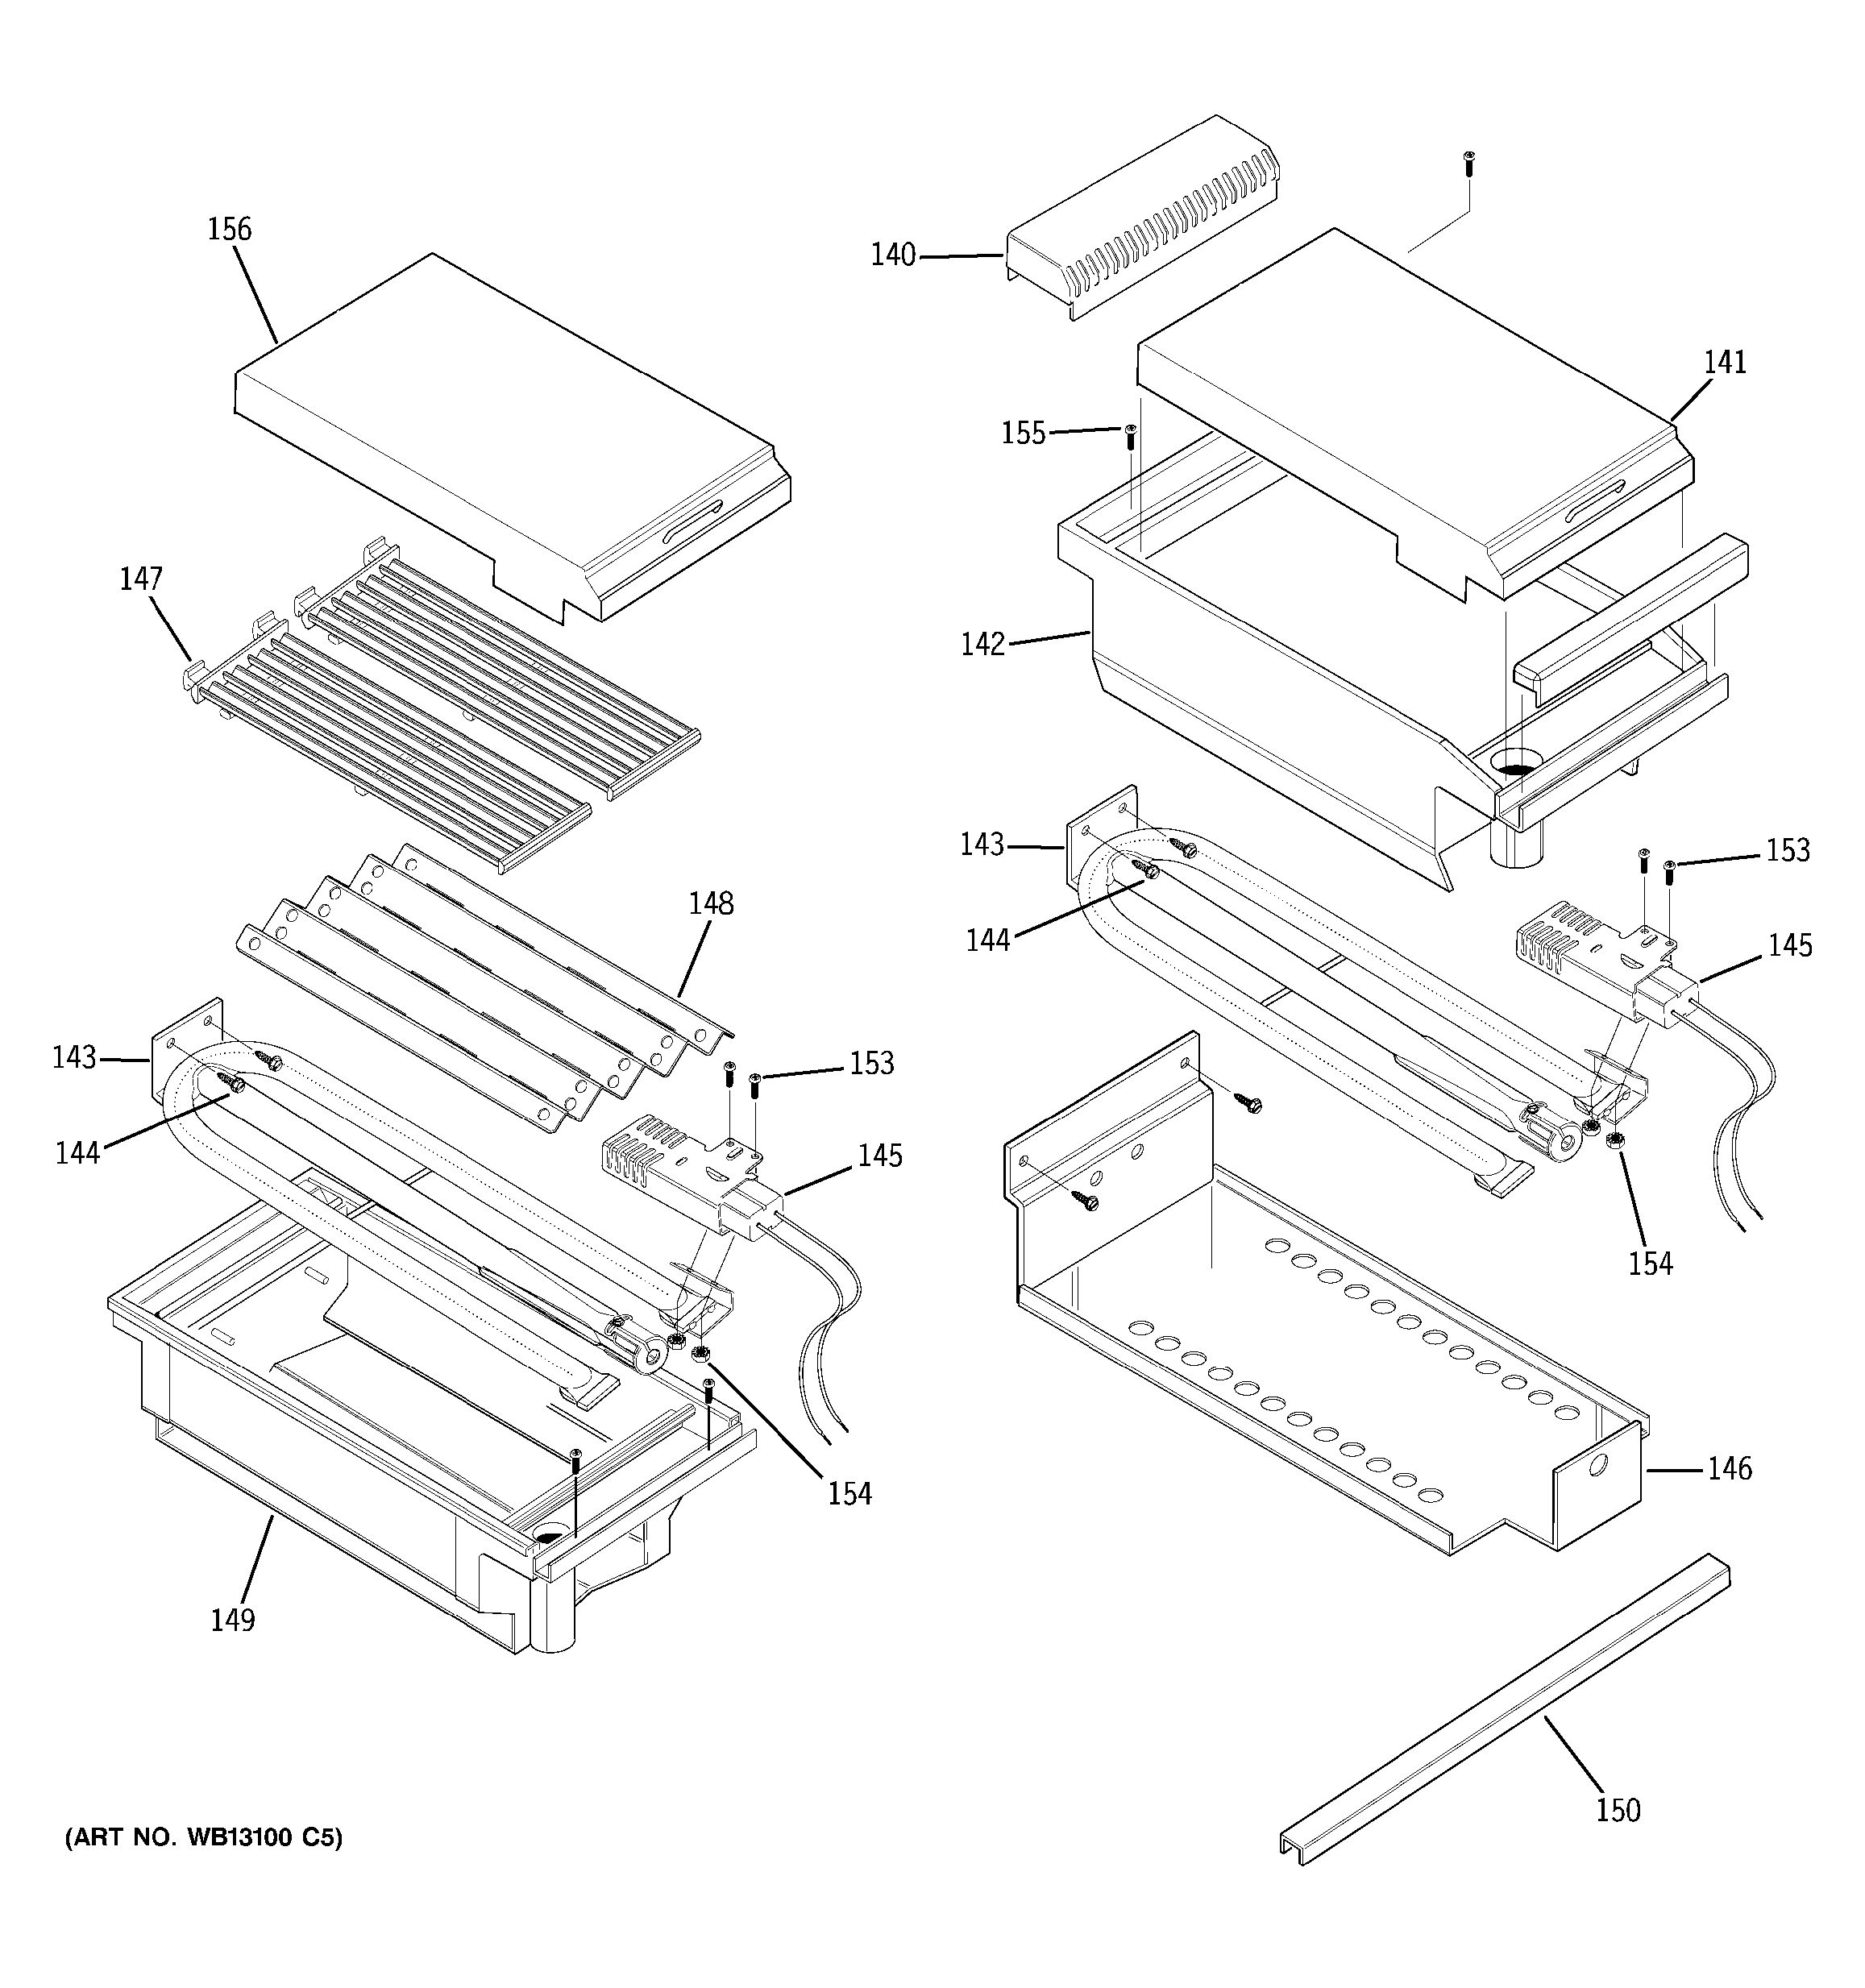 Assembly View For Grill Assembly